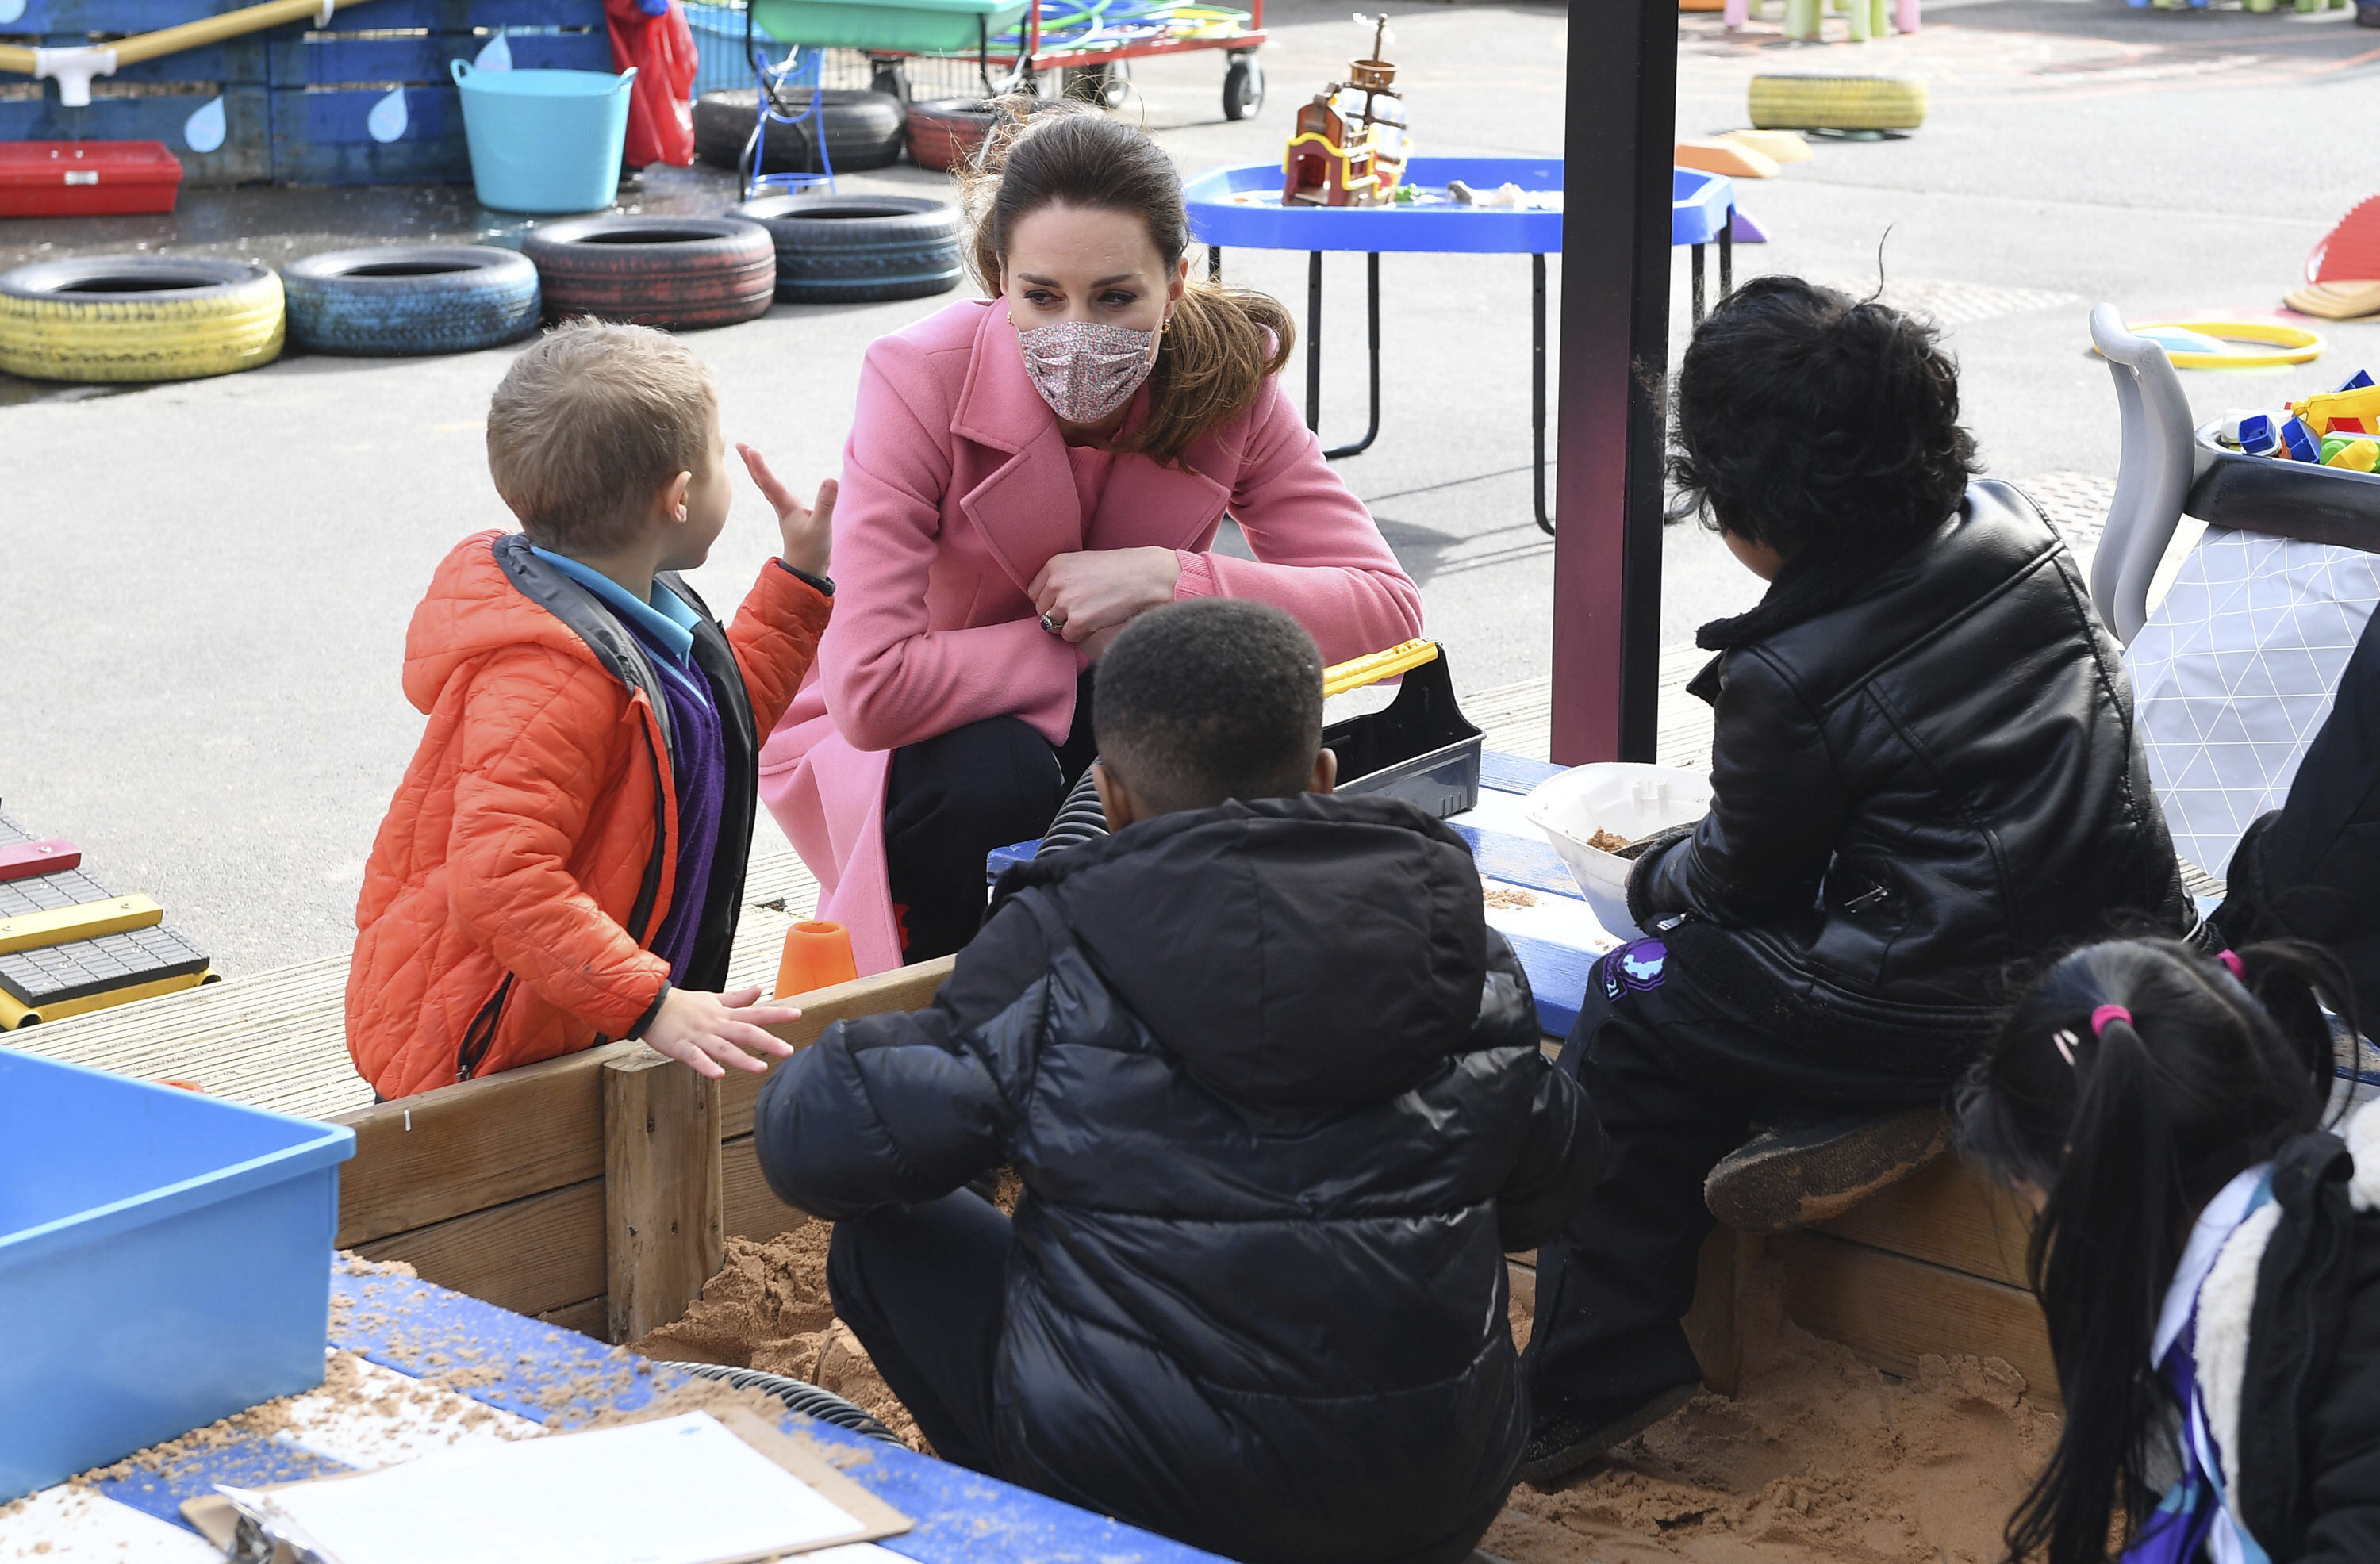 <p>Britain's Kate, Duchess of Cambridge talks with a group of children in the playground during a visit with Prince William to School21, a school in east London, Thursday March 11, 2021. (Justin Tallis/Pool via AP)</p>